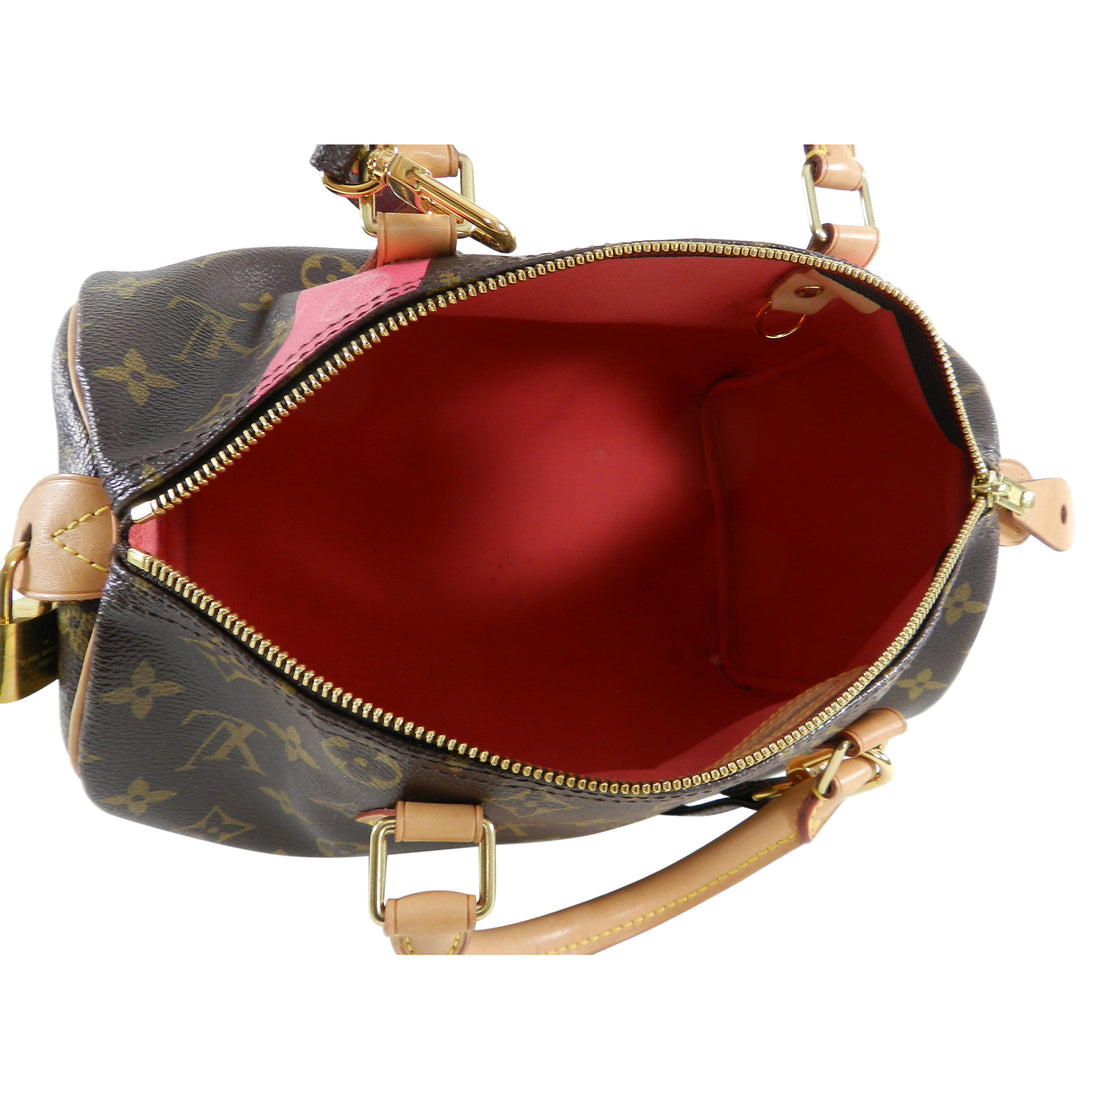 Louis Vuitton Limited Edition Monogram Grenade Speedy 30